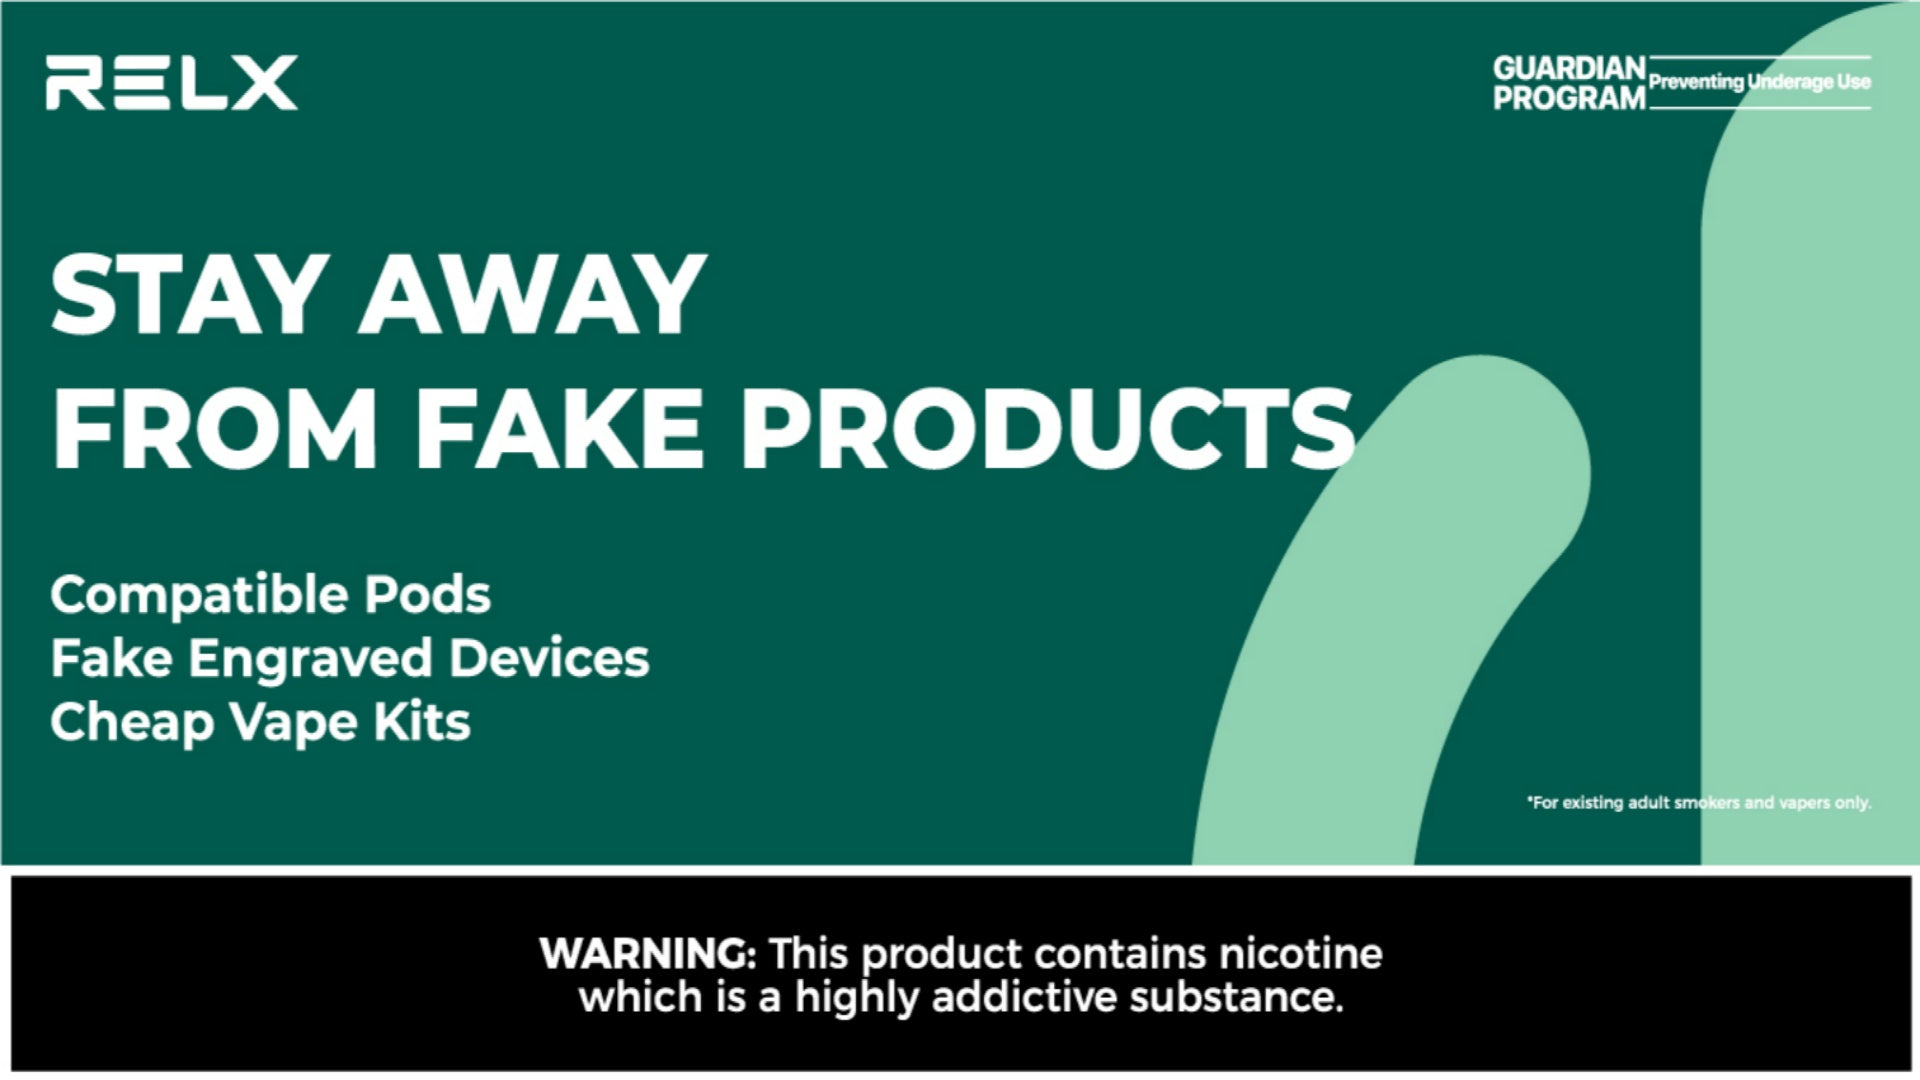 RELX Warns Vapers to Stay Away from Compatible Pods, Fake Engraved Devices and Cheap Vape Kits